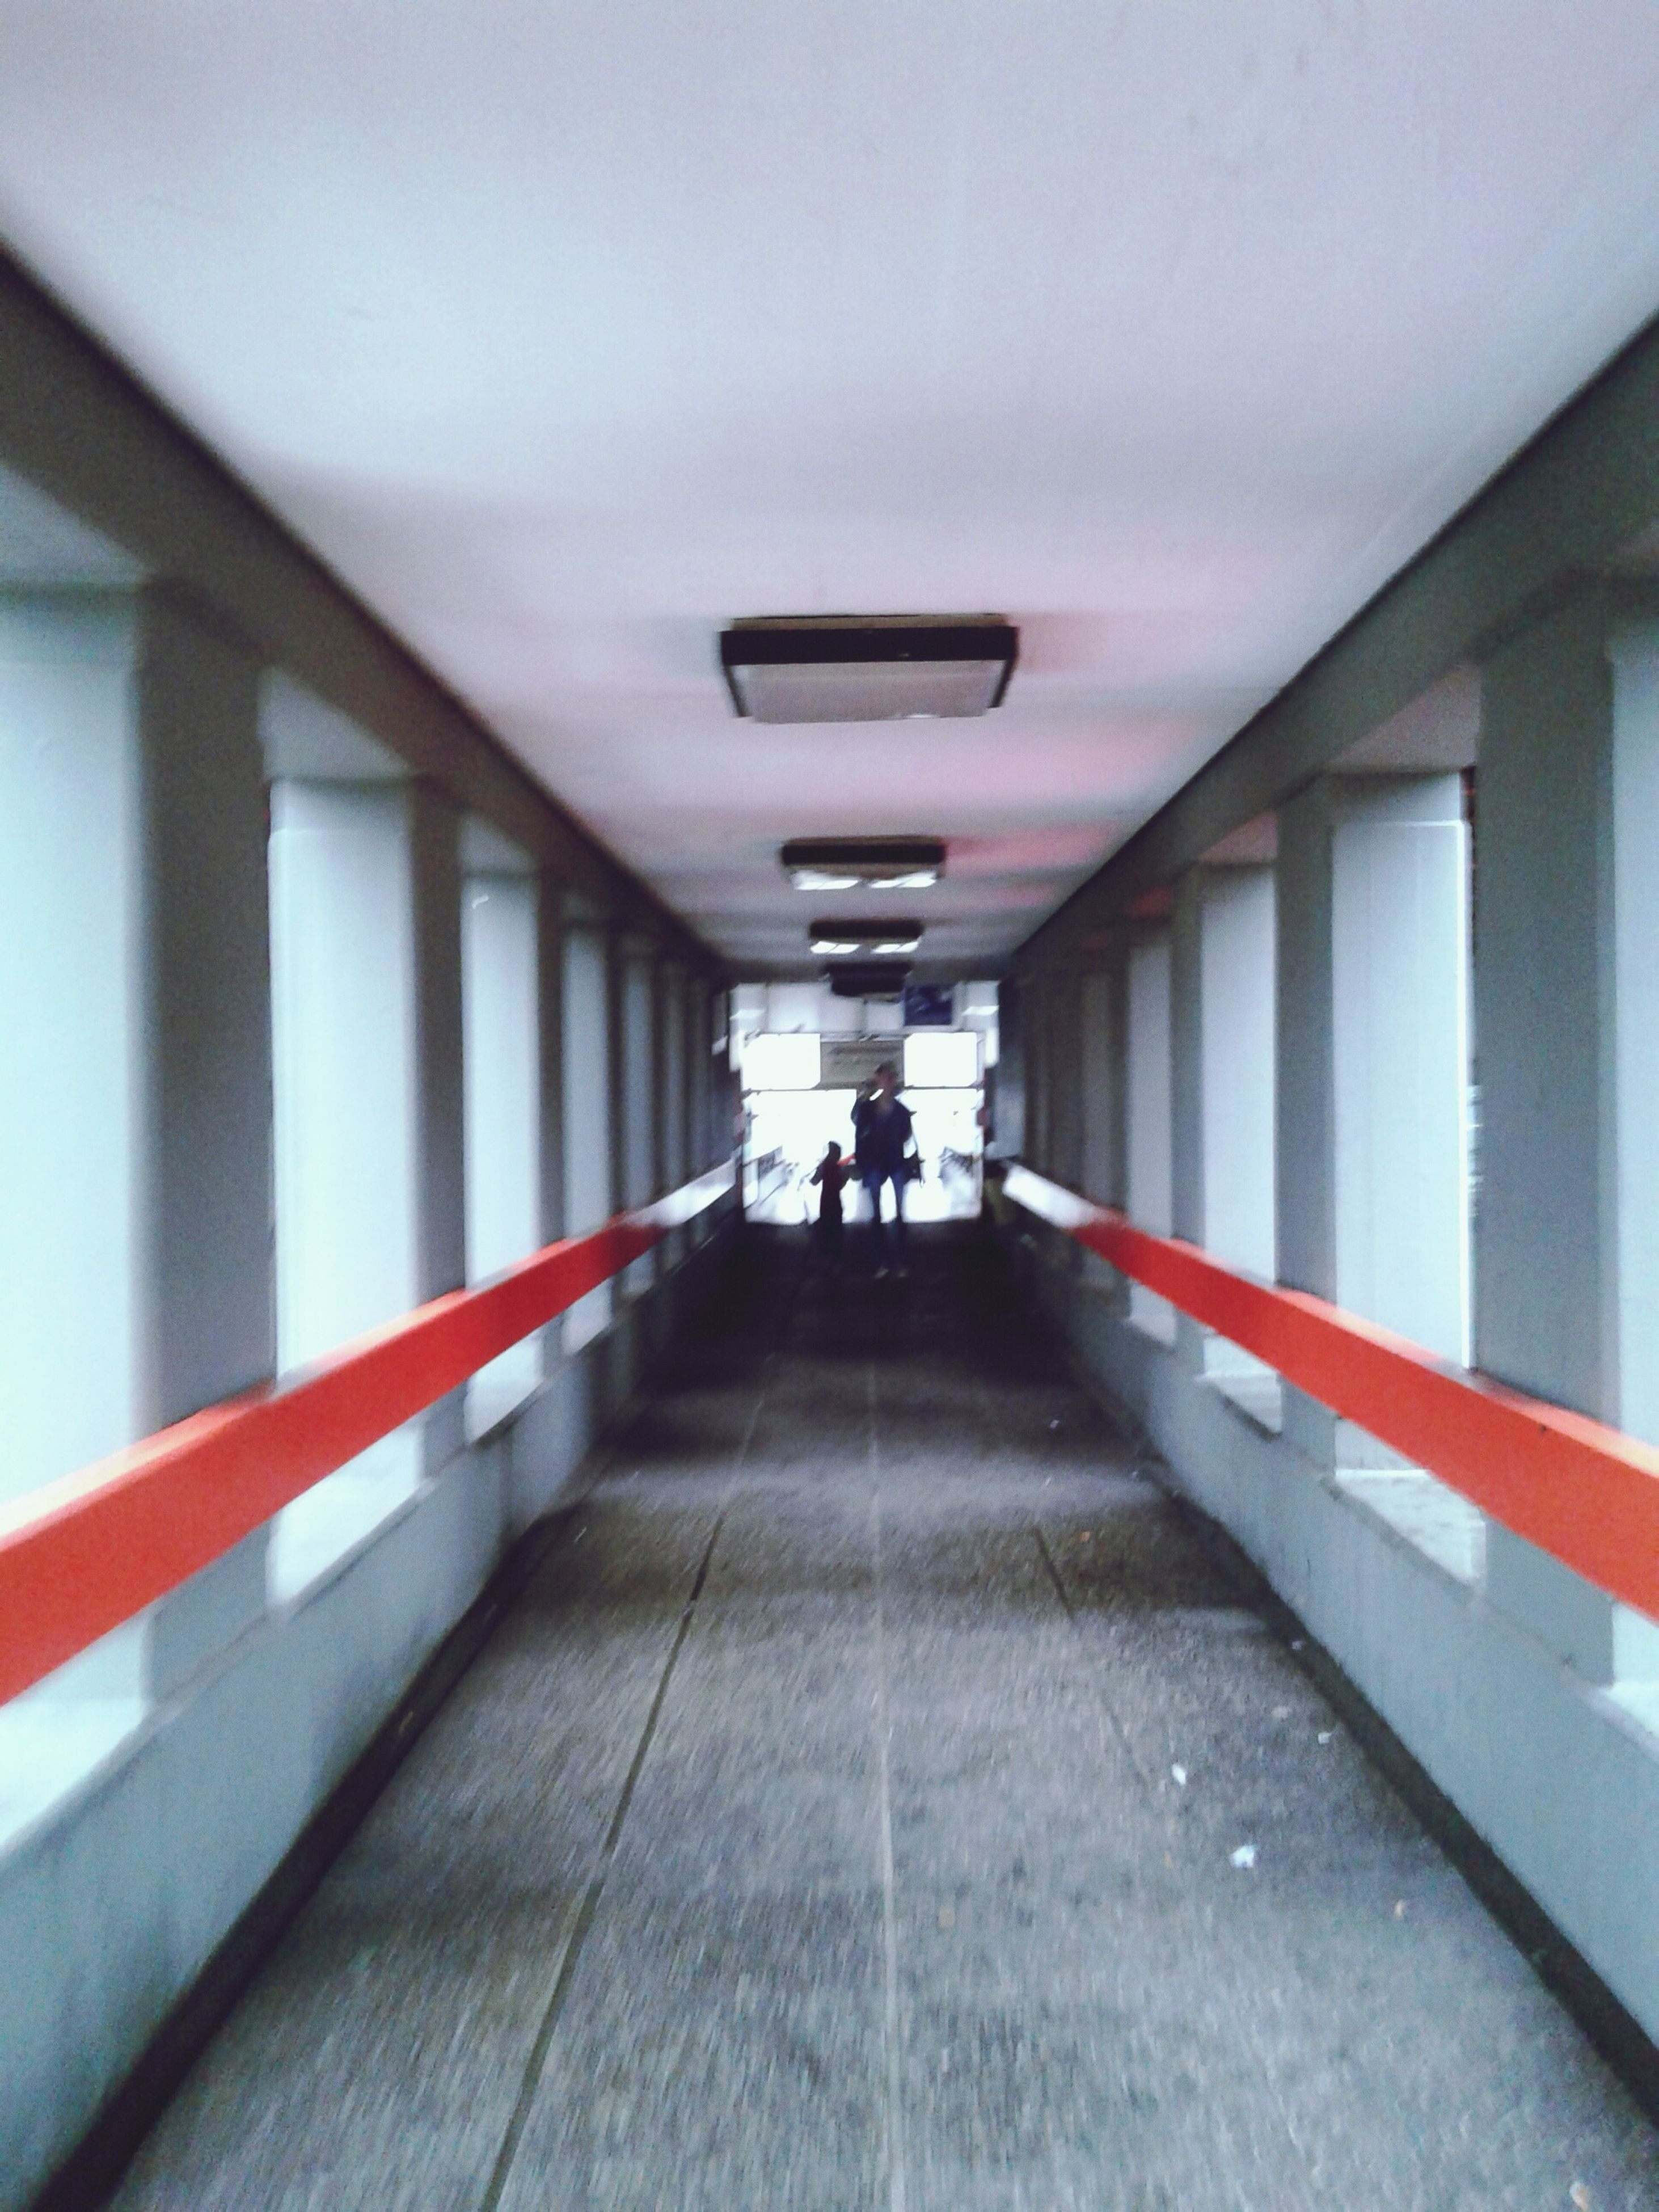 the way forward, indoors, architecture, built structure, no people, day